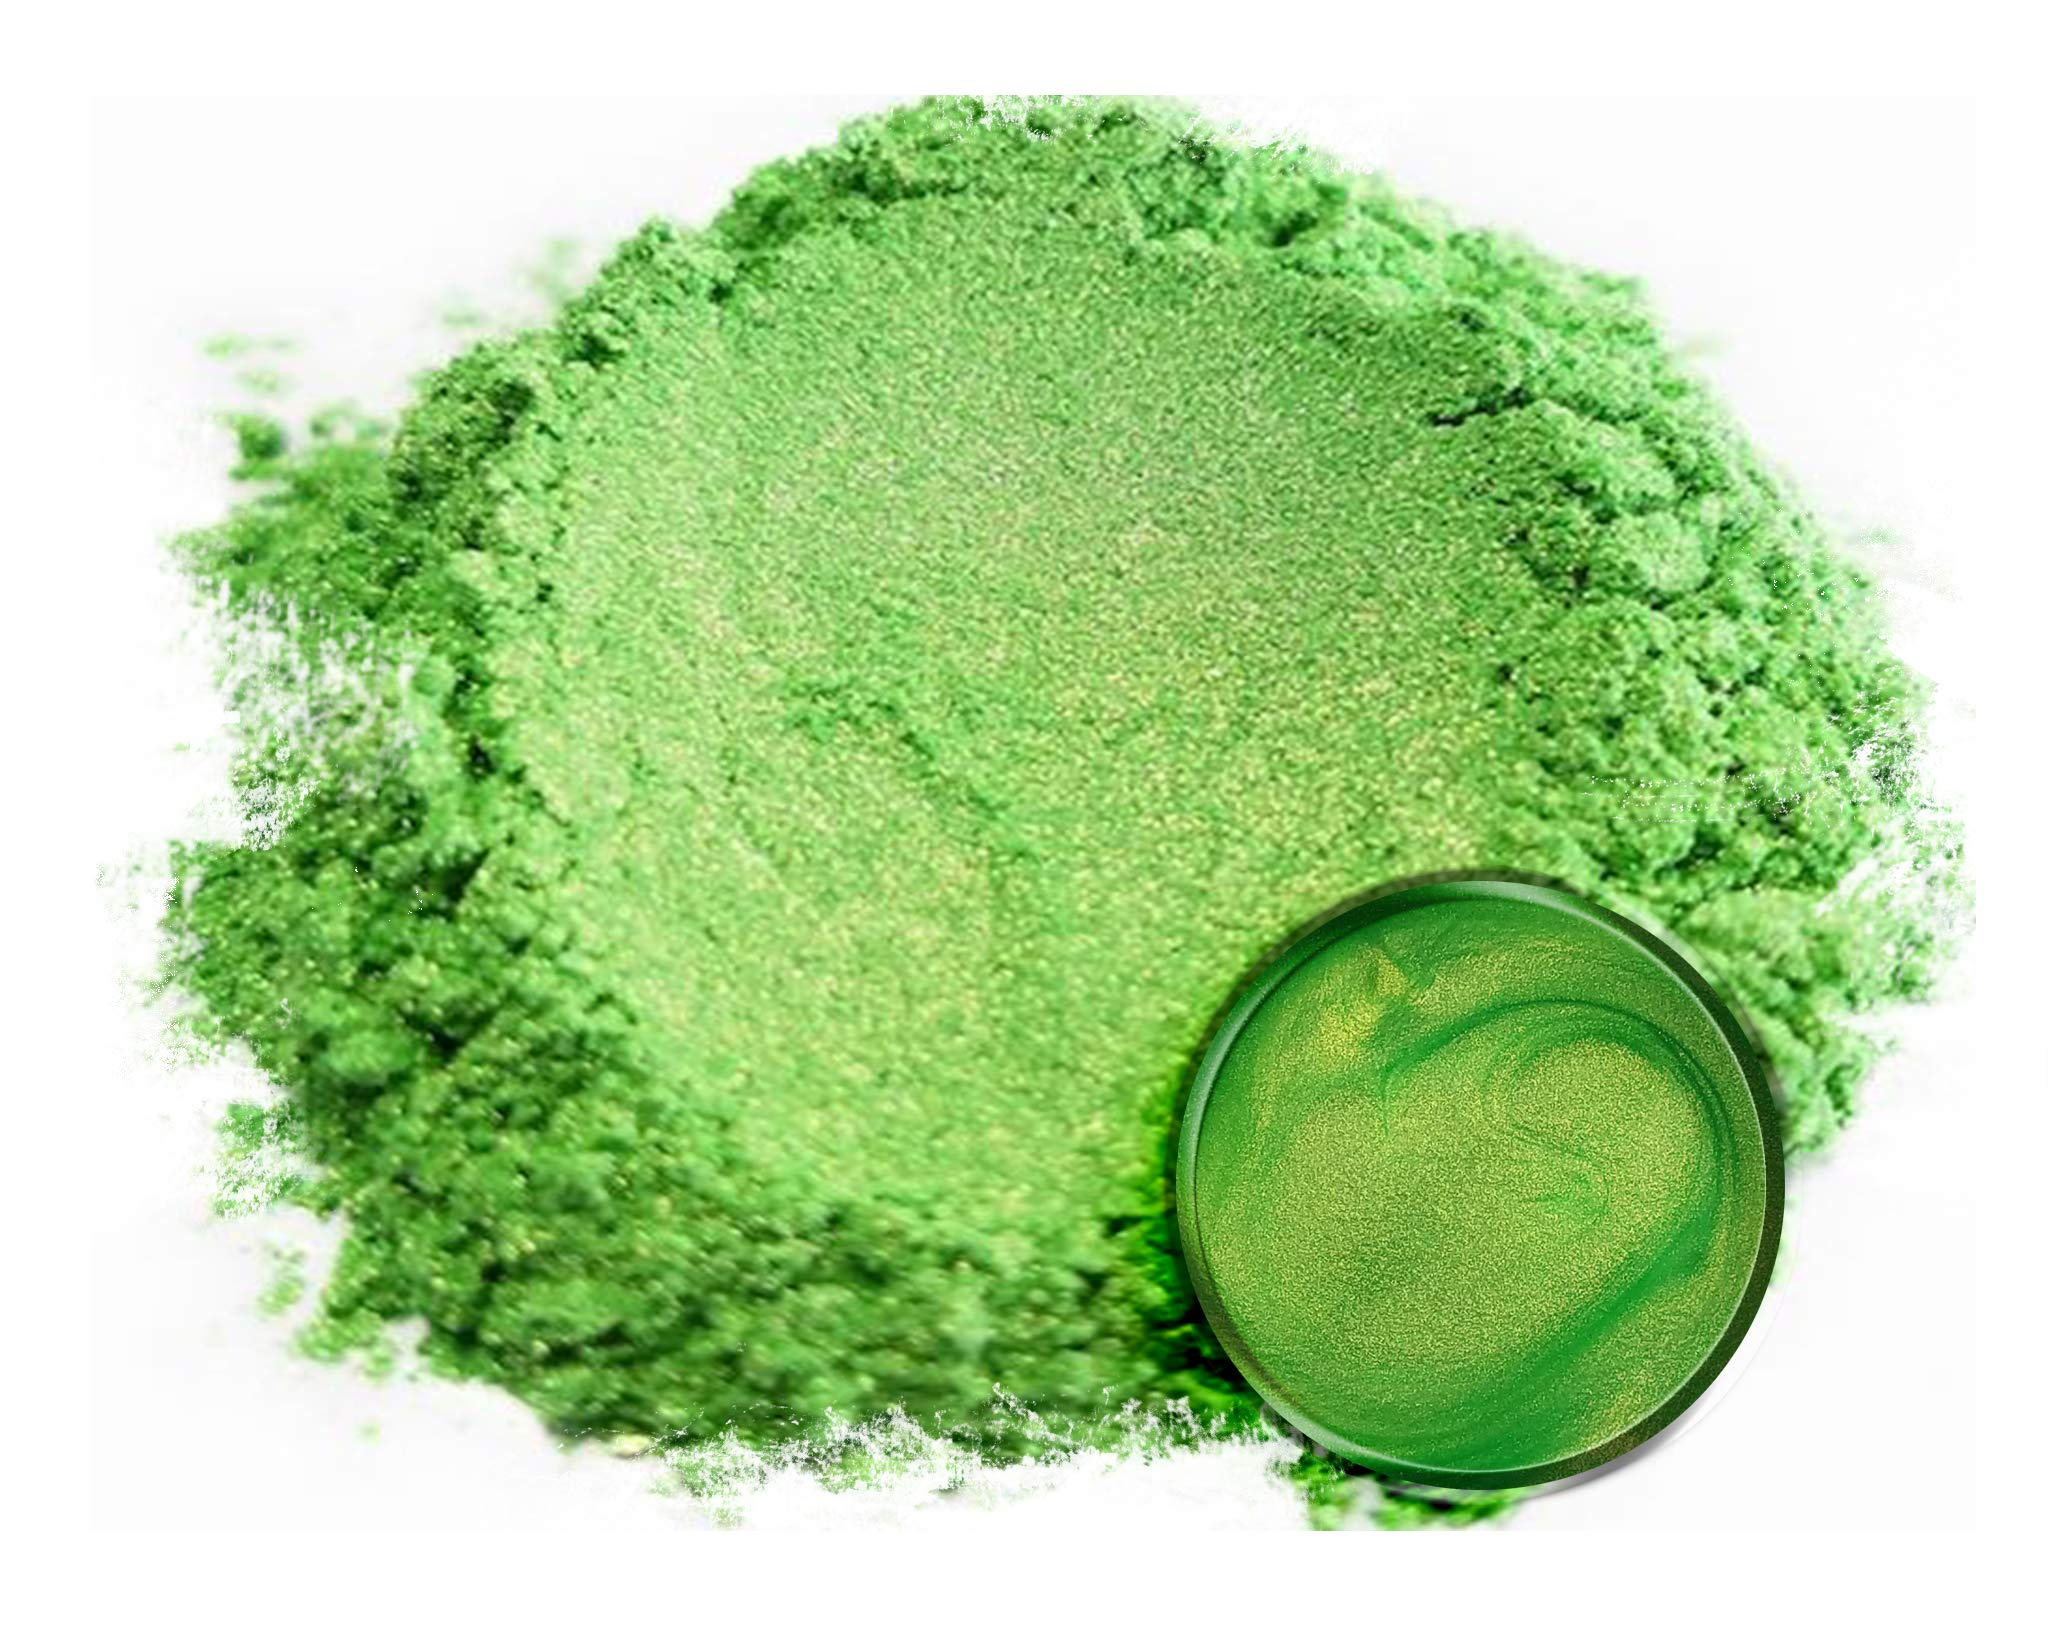 Eye Candy Mica Powder Pigment ''Jade Green'' (50g) Multipurpose DIY Arts and Crafts Additive | Woodworking, Epoxy, Resin, Natural Bath Bombs, Paint, Soap, Nail Polish, Lip Balm by Eye Candy